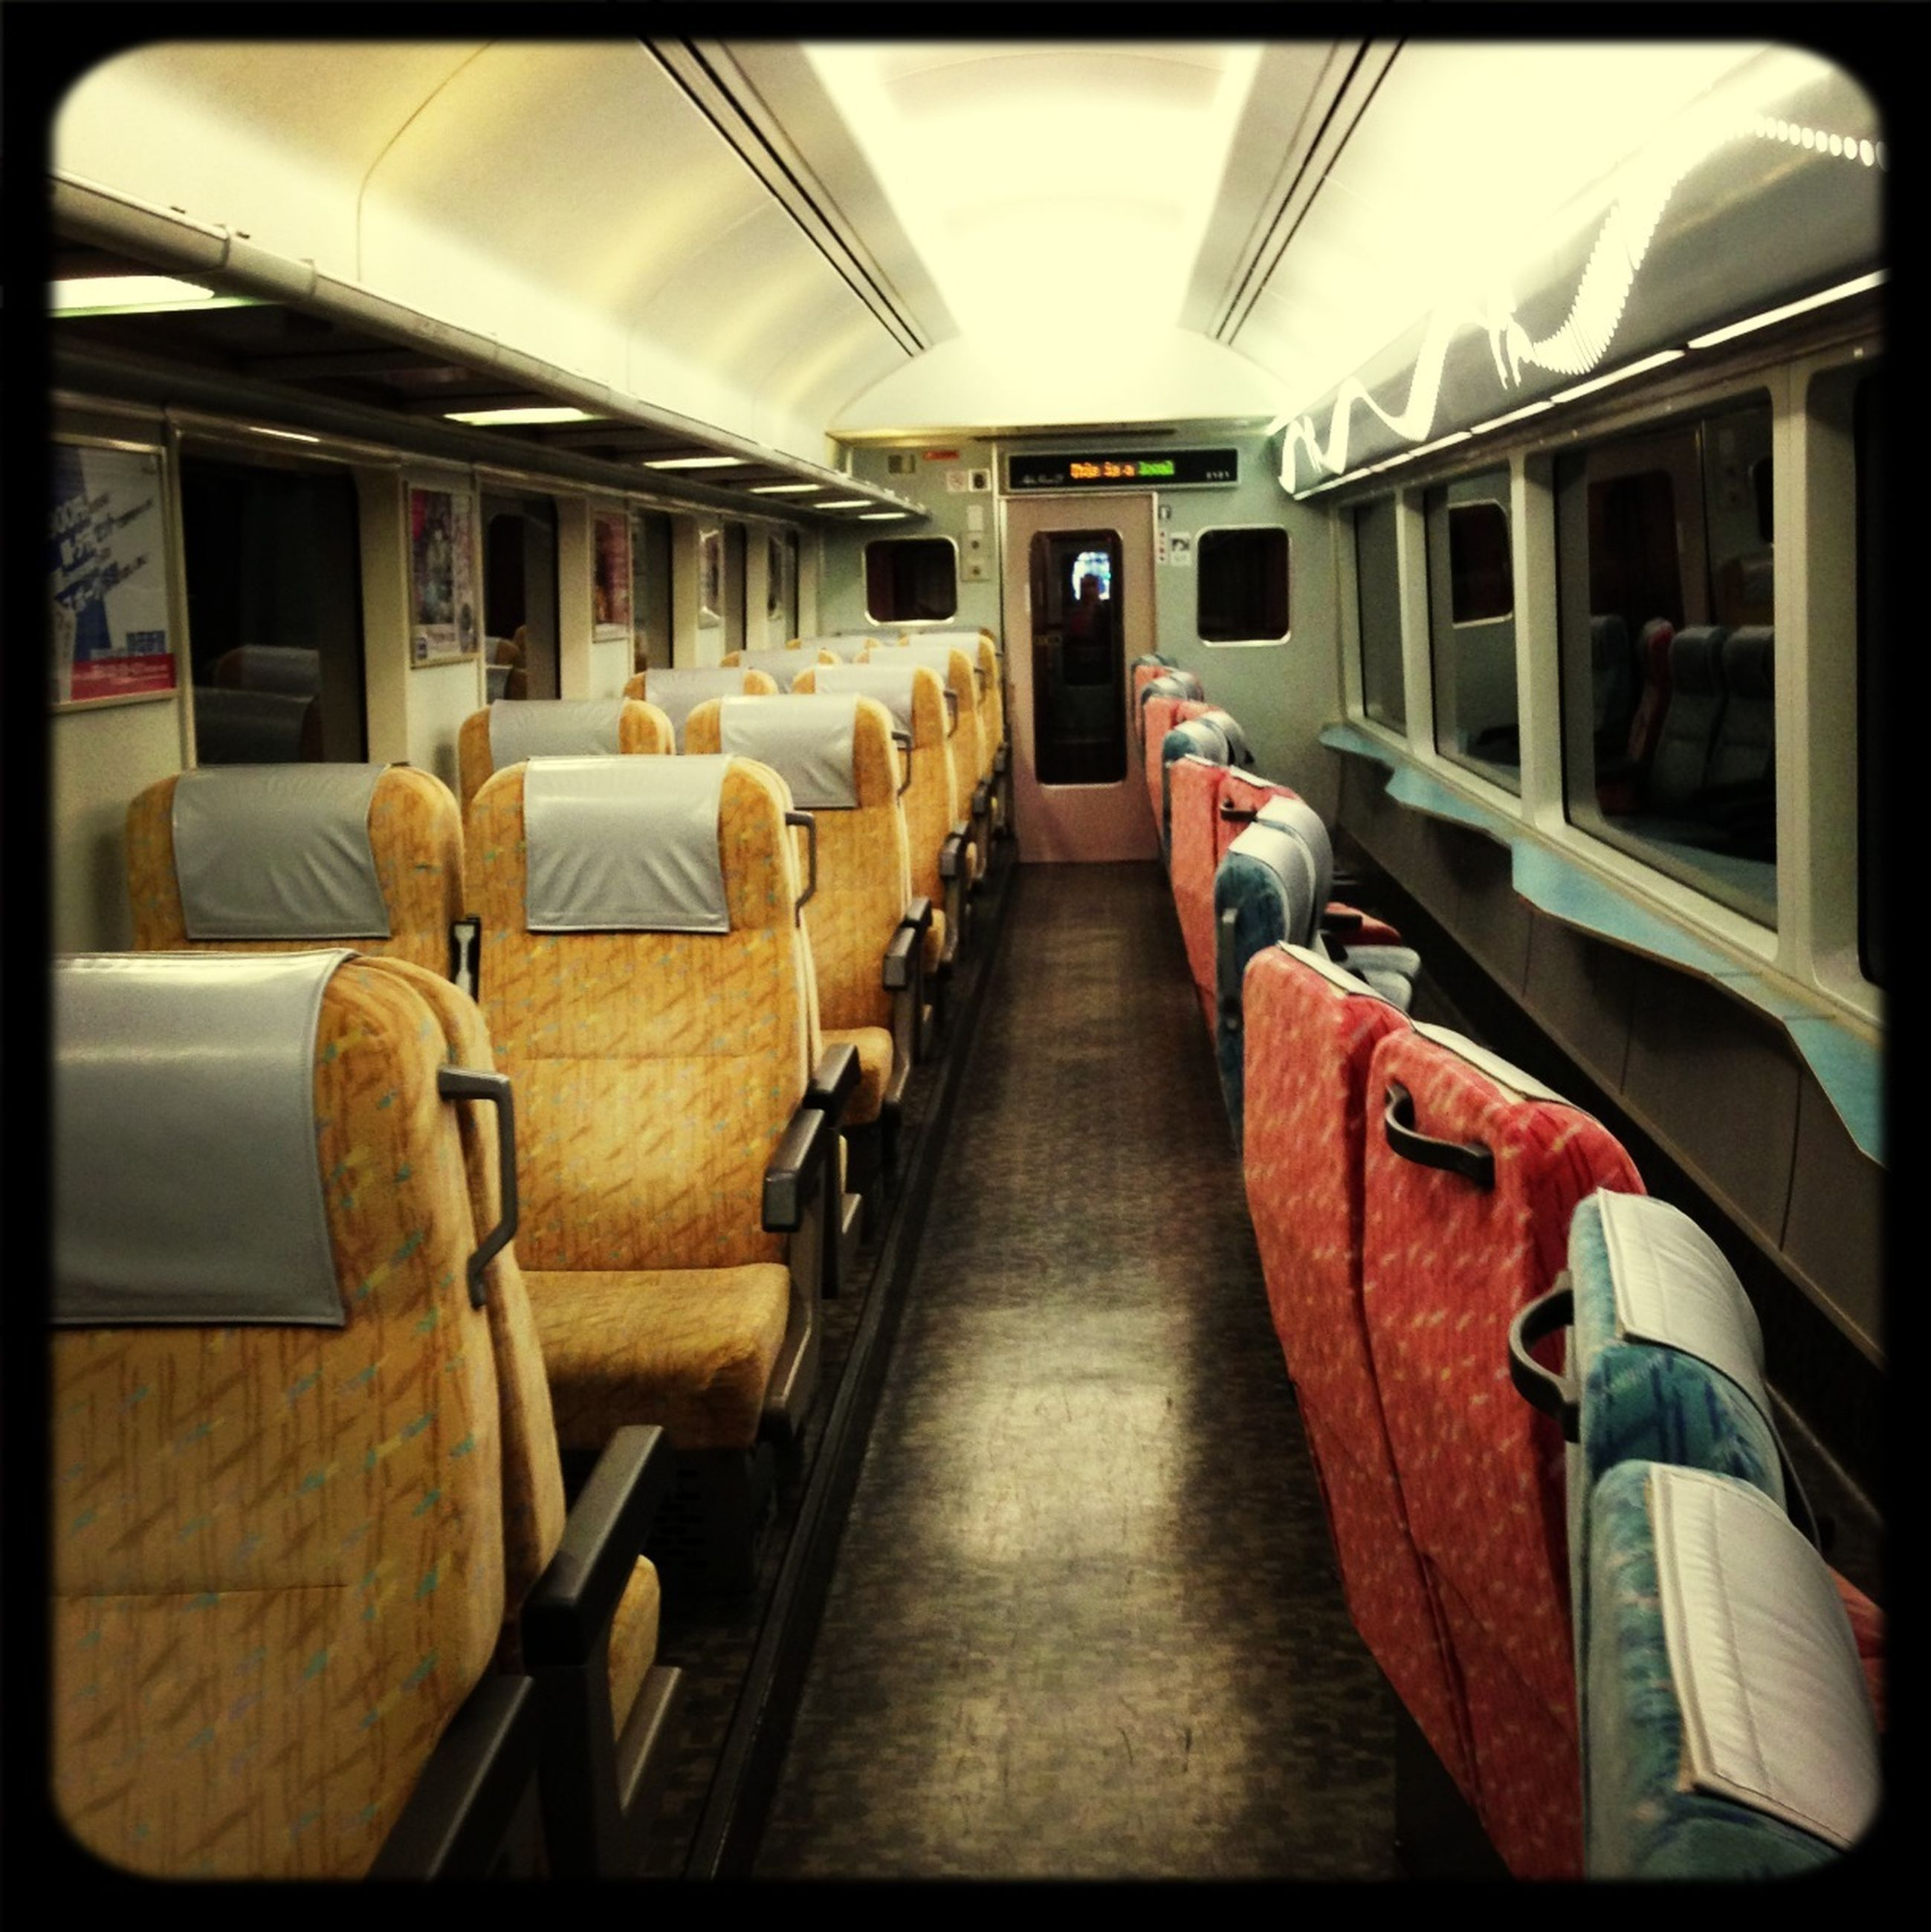 indoors, transportation, public transportation, mode of transport, vehicle seat, vehicle interior, train - vehicle, rail transportation, passenger train, train, travel, journey, public transport, railroad track, railroad station, bus, absence, railroad station platform, in a row, window